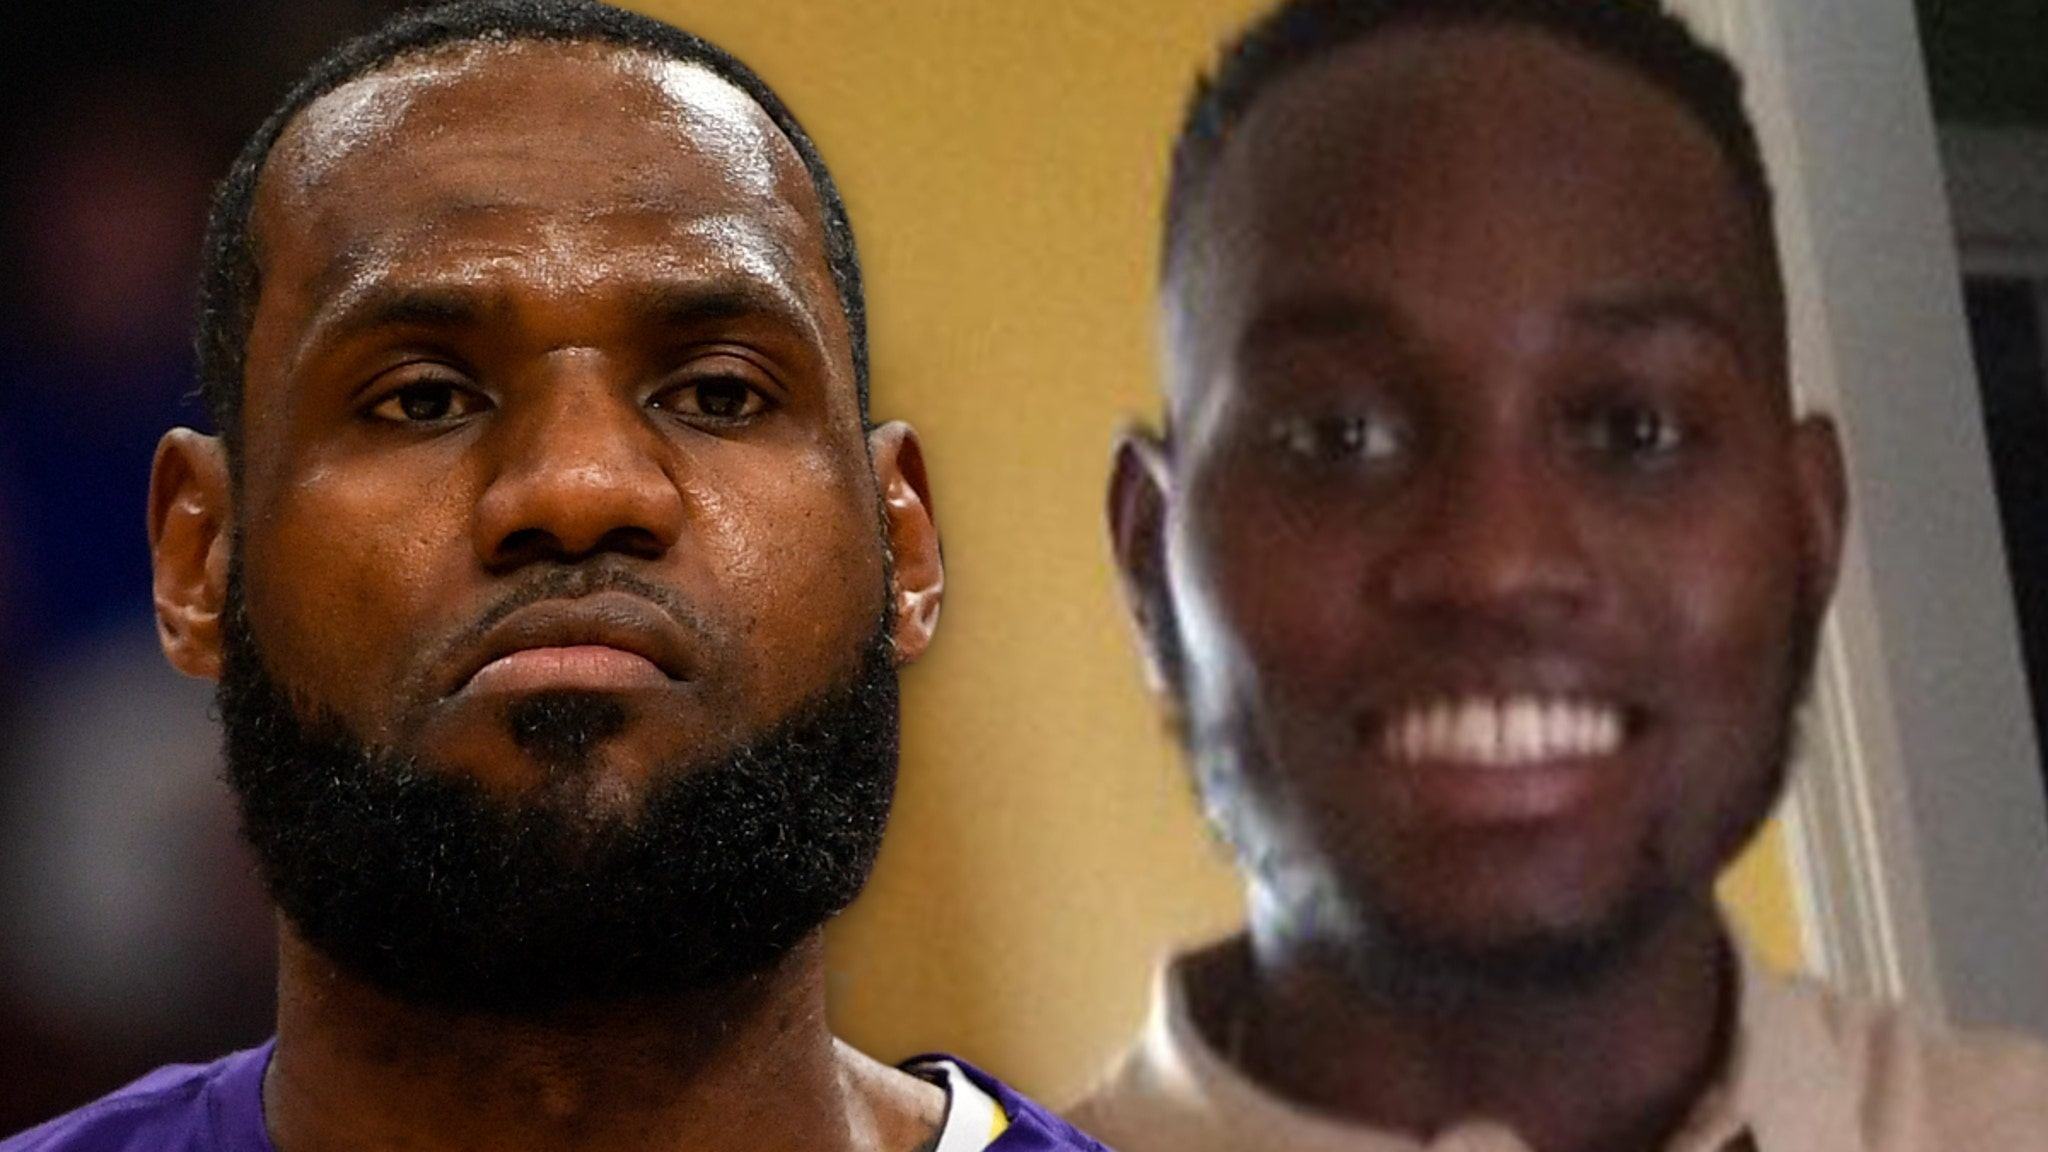 LeBron James Outraged Over Ahmaud Arbery Shooting, 'We're Hunted EVERY DAY'